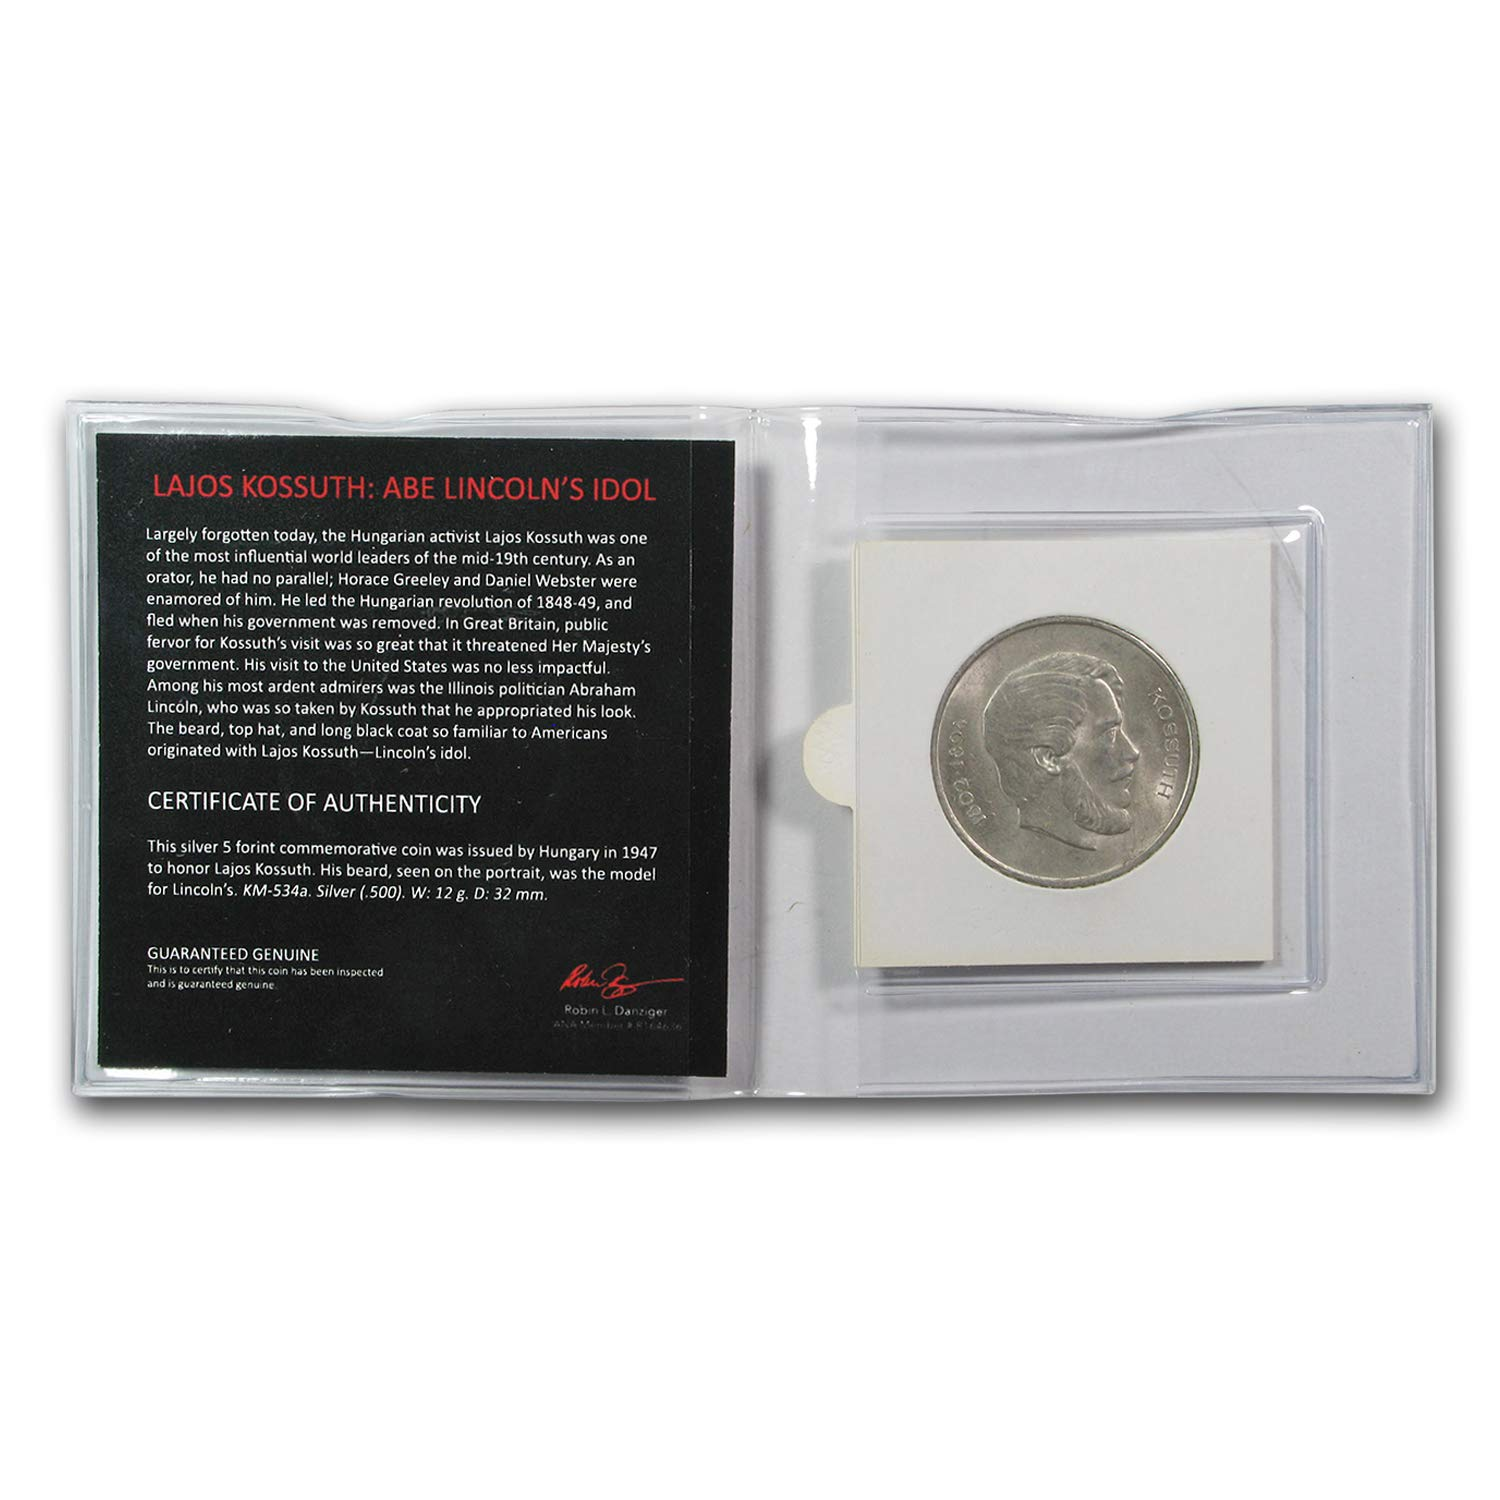 Lajos Kossuth 1947 5 Forint Silver Commemorative Coin Mini Album 1947 No Mint Mark Lincolns Idol Story /& Certificate Forint Seller Uncirculated